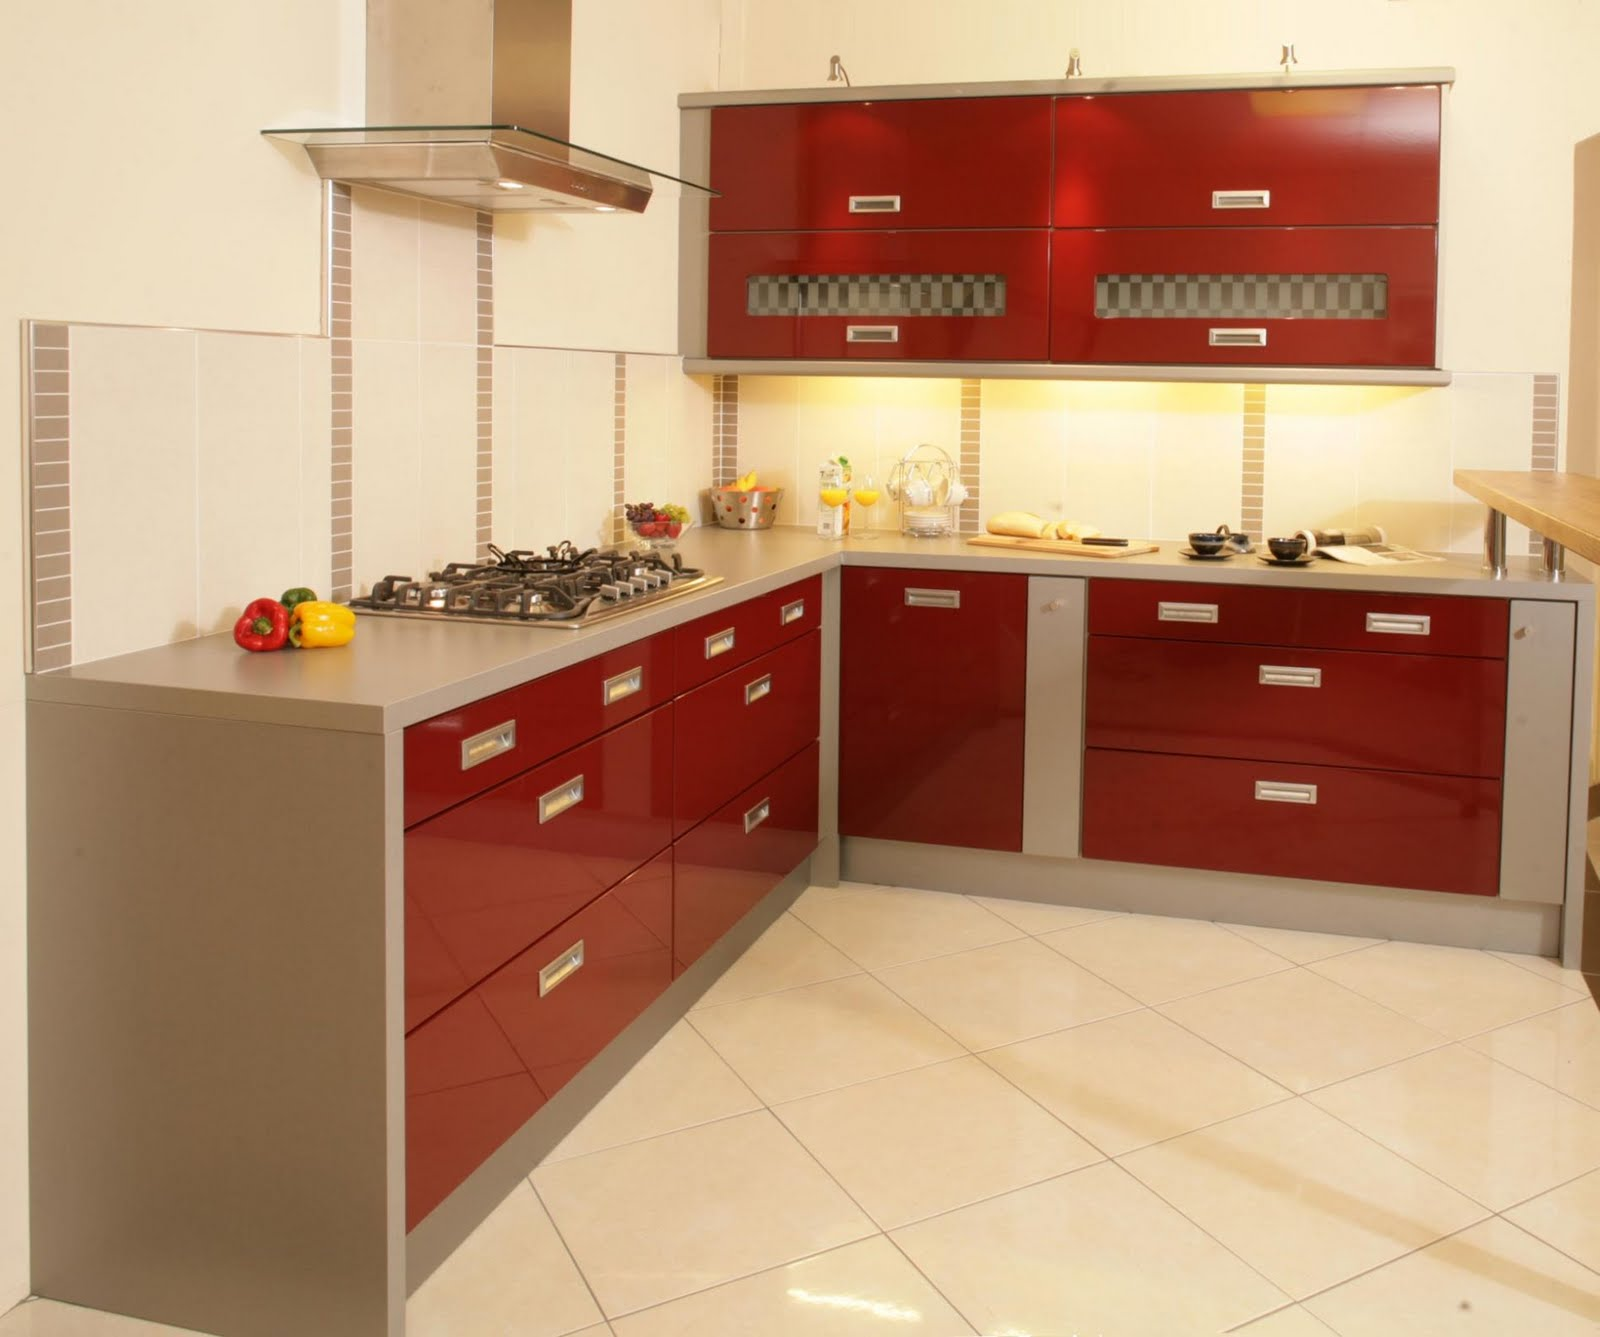 Pictures of red kitchen cabinets kitchen design best for Kitchen furniture design ideas